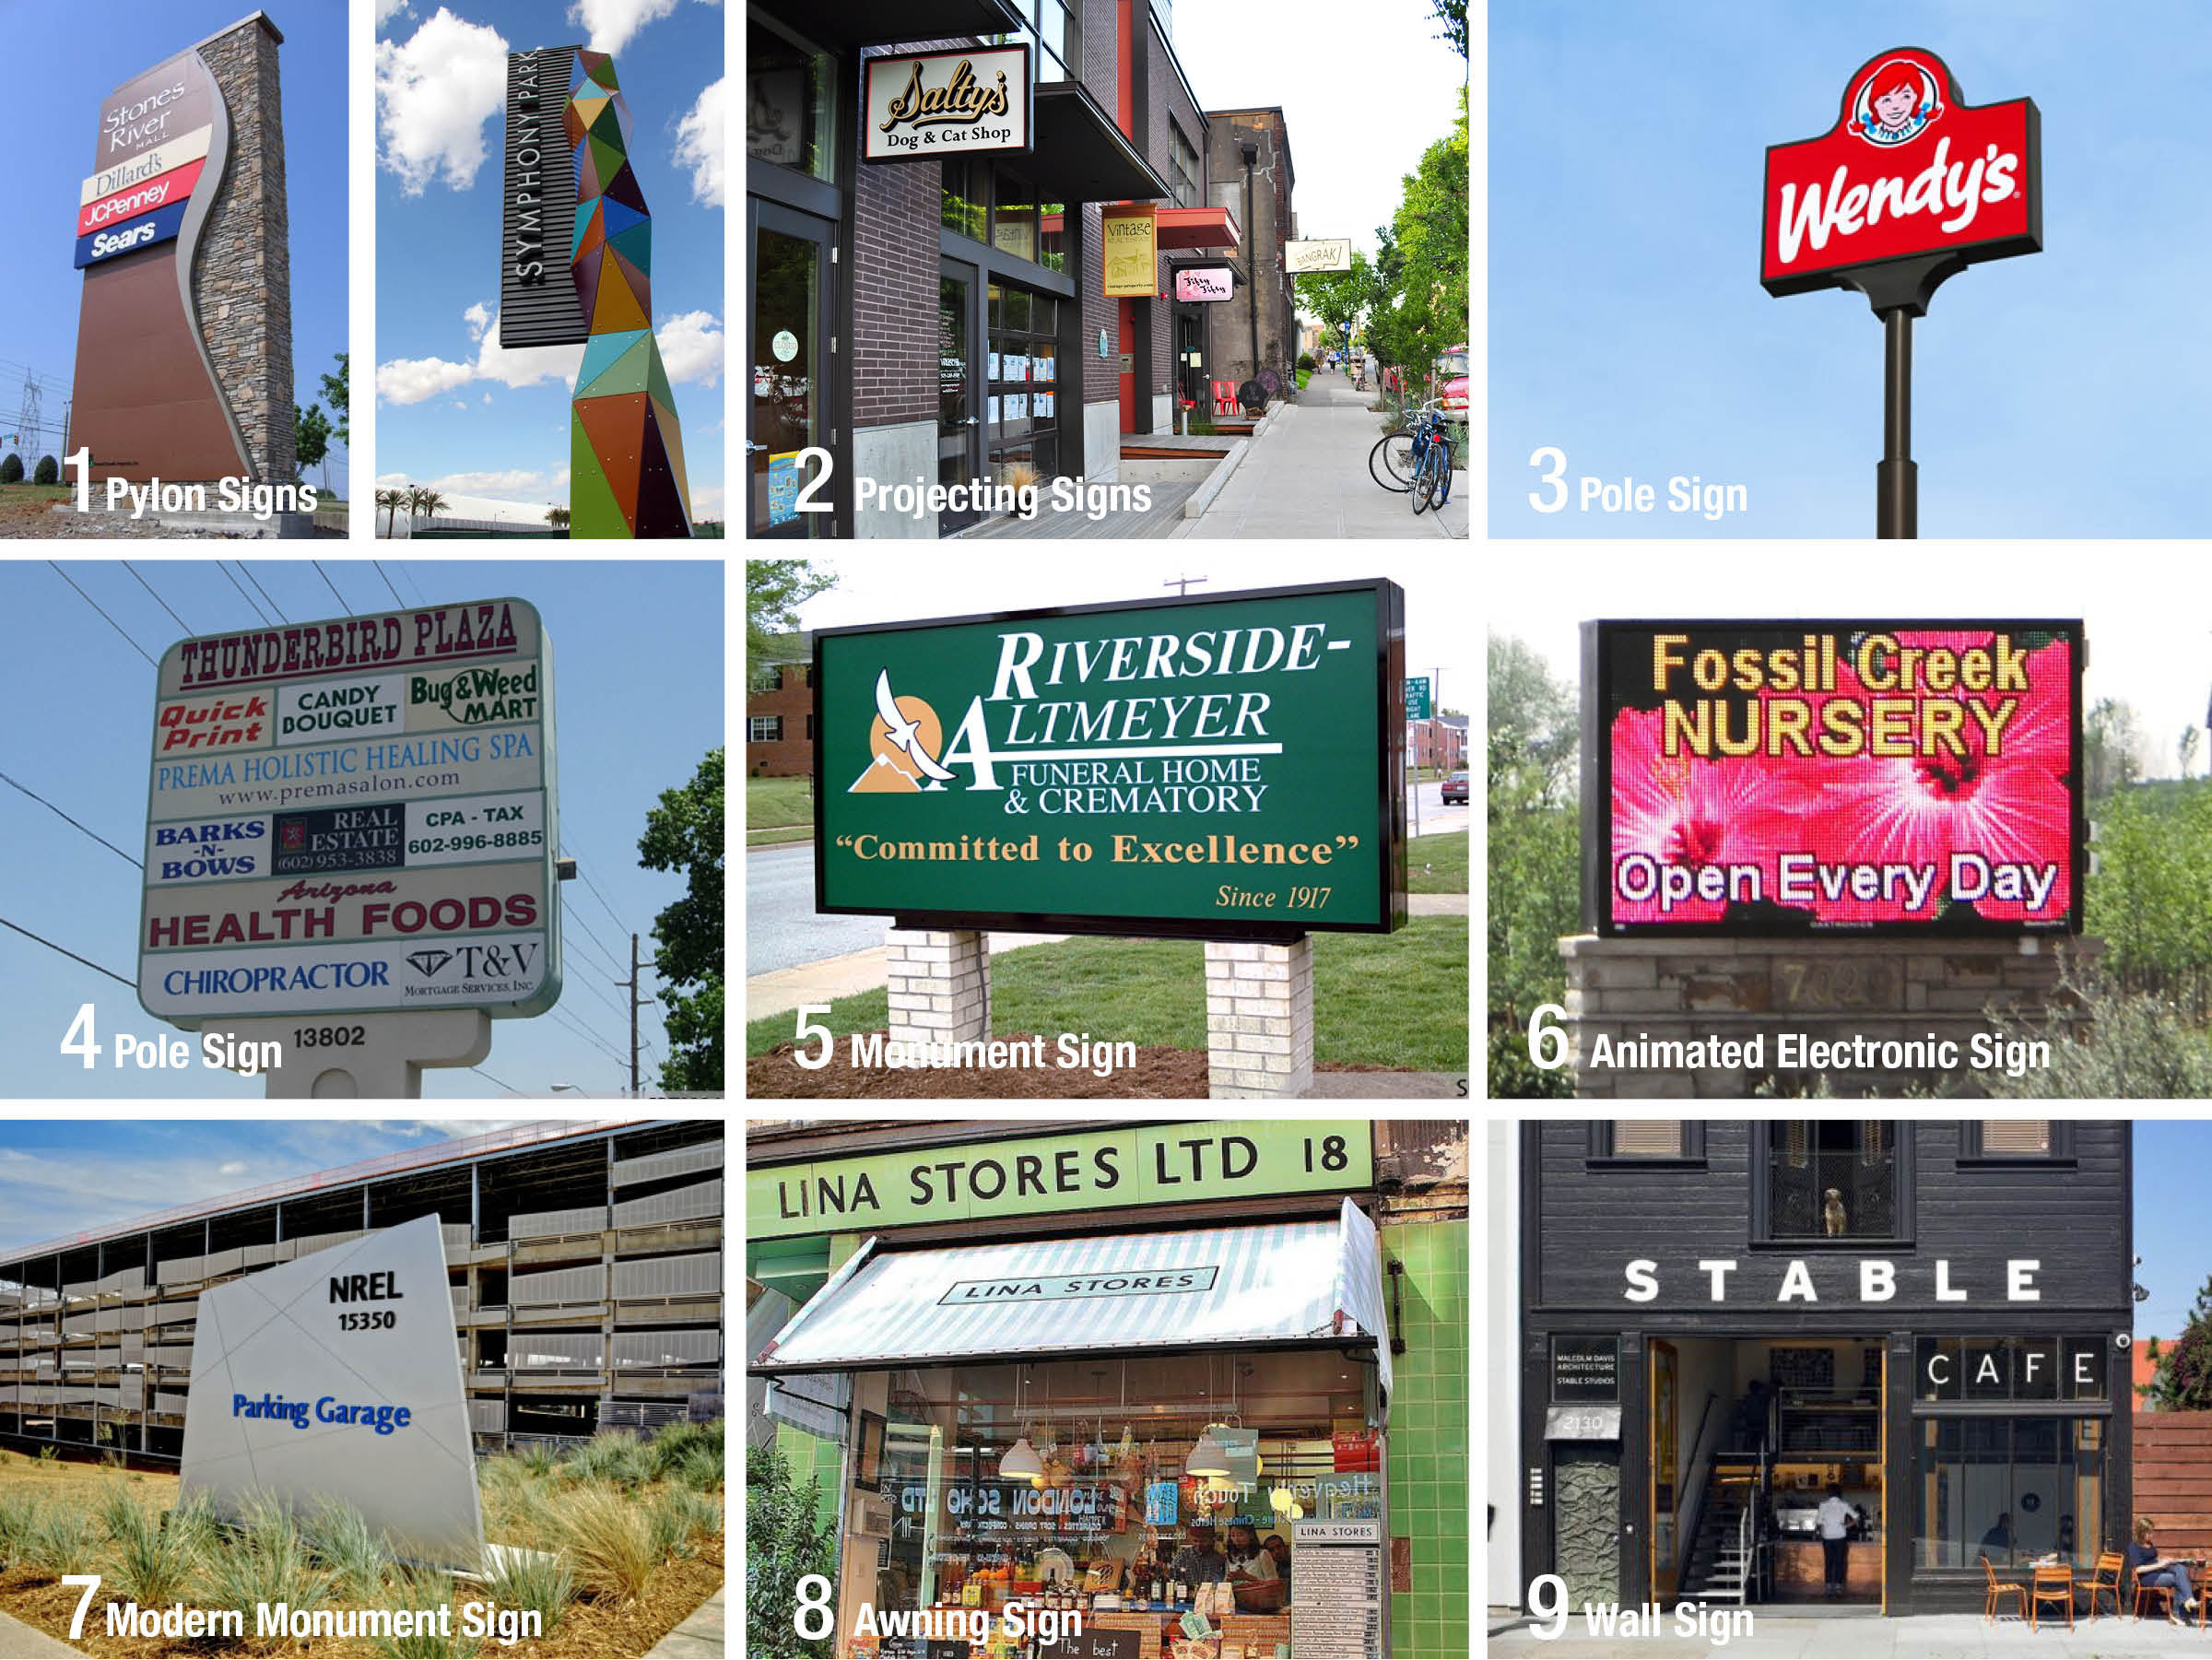 State Street Planning: Sign Types